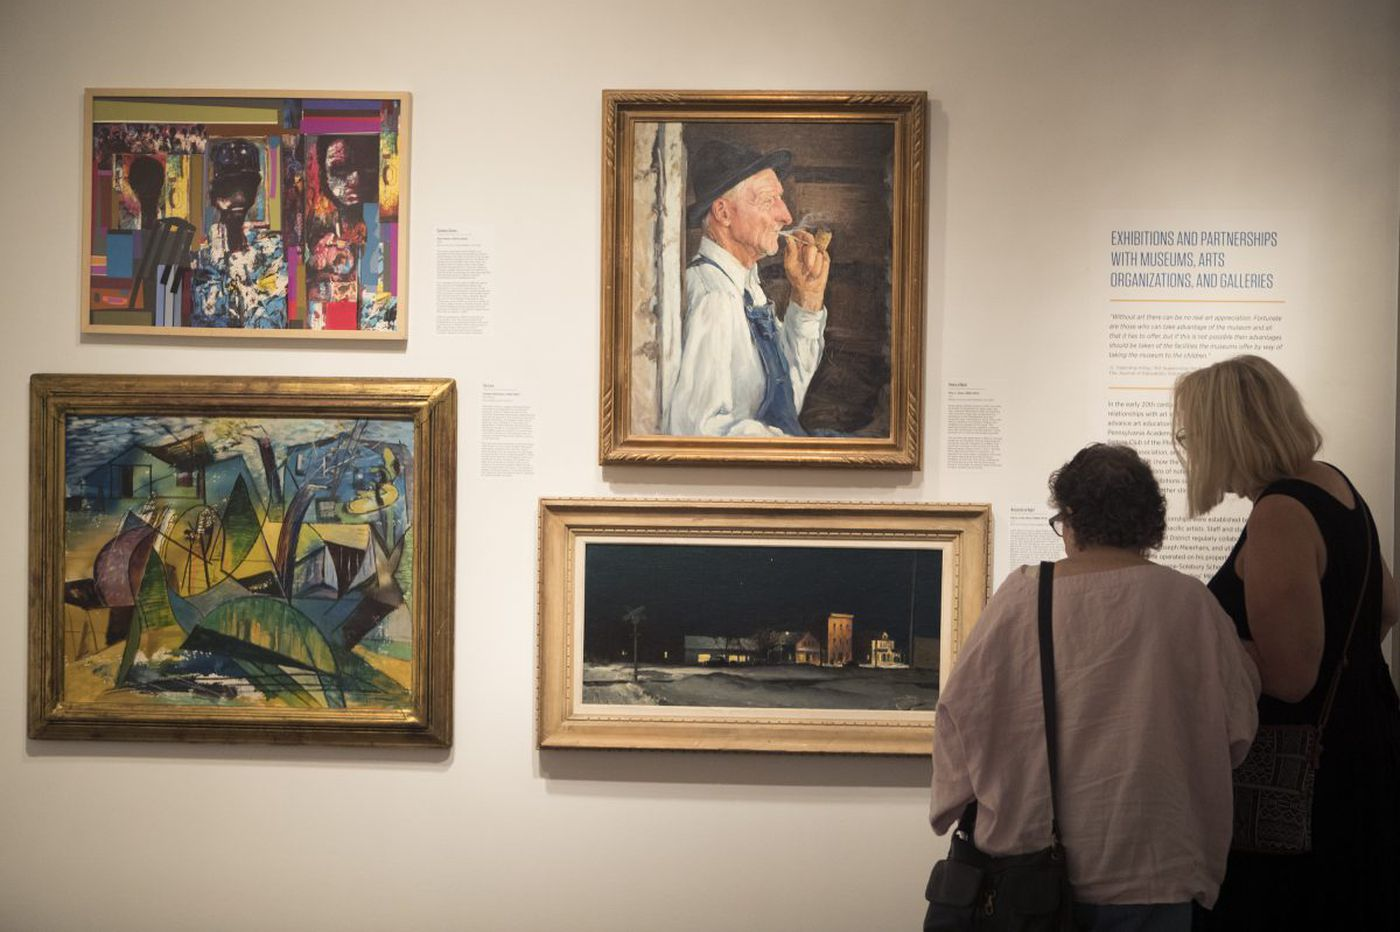 Hidden for years, Philly schools' art hangs in a museum - for now